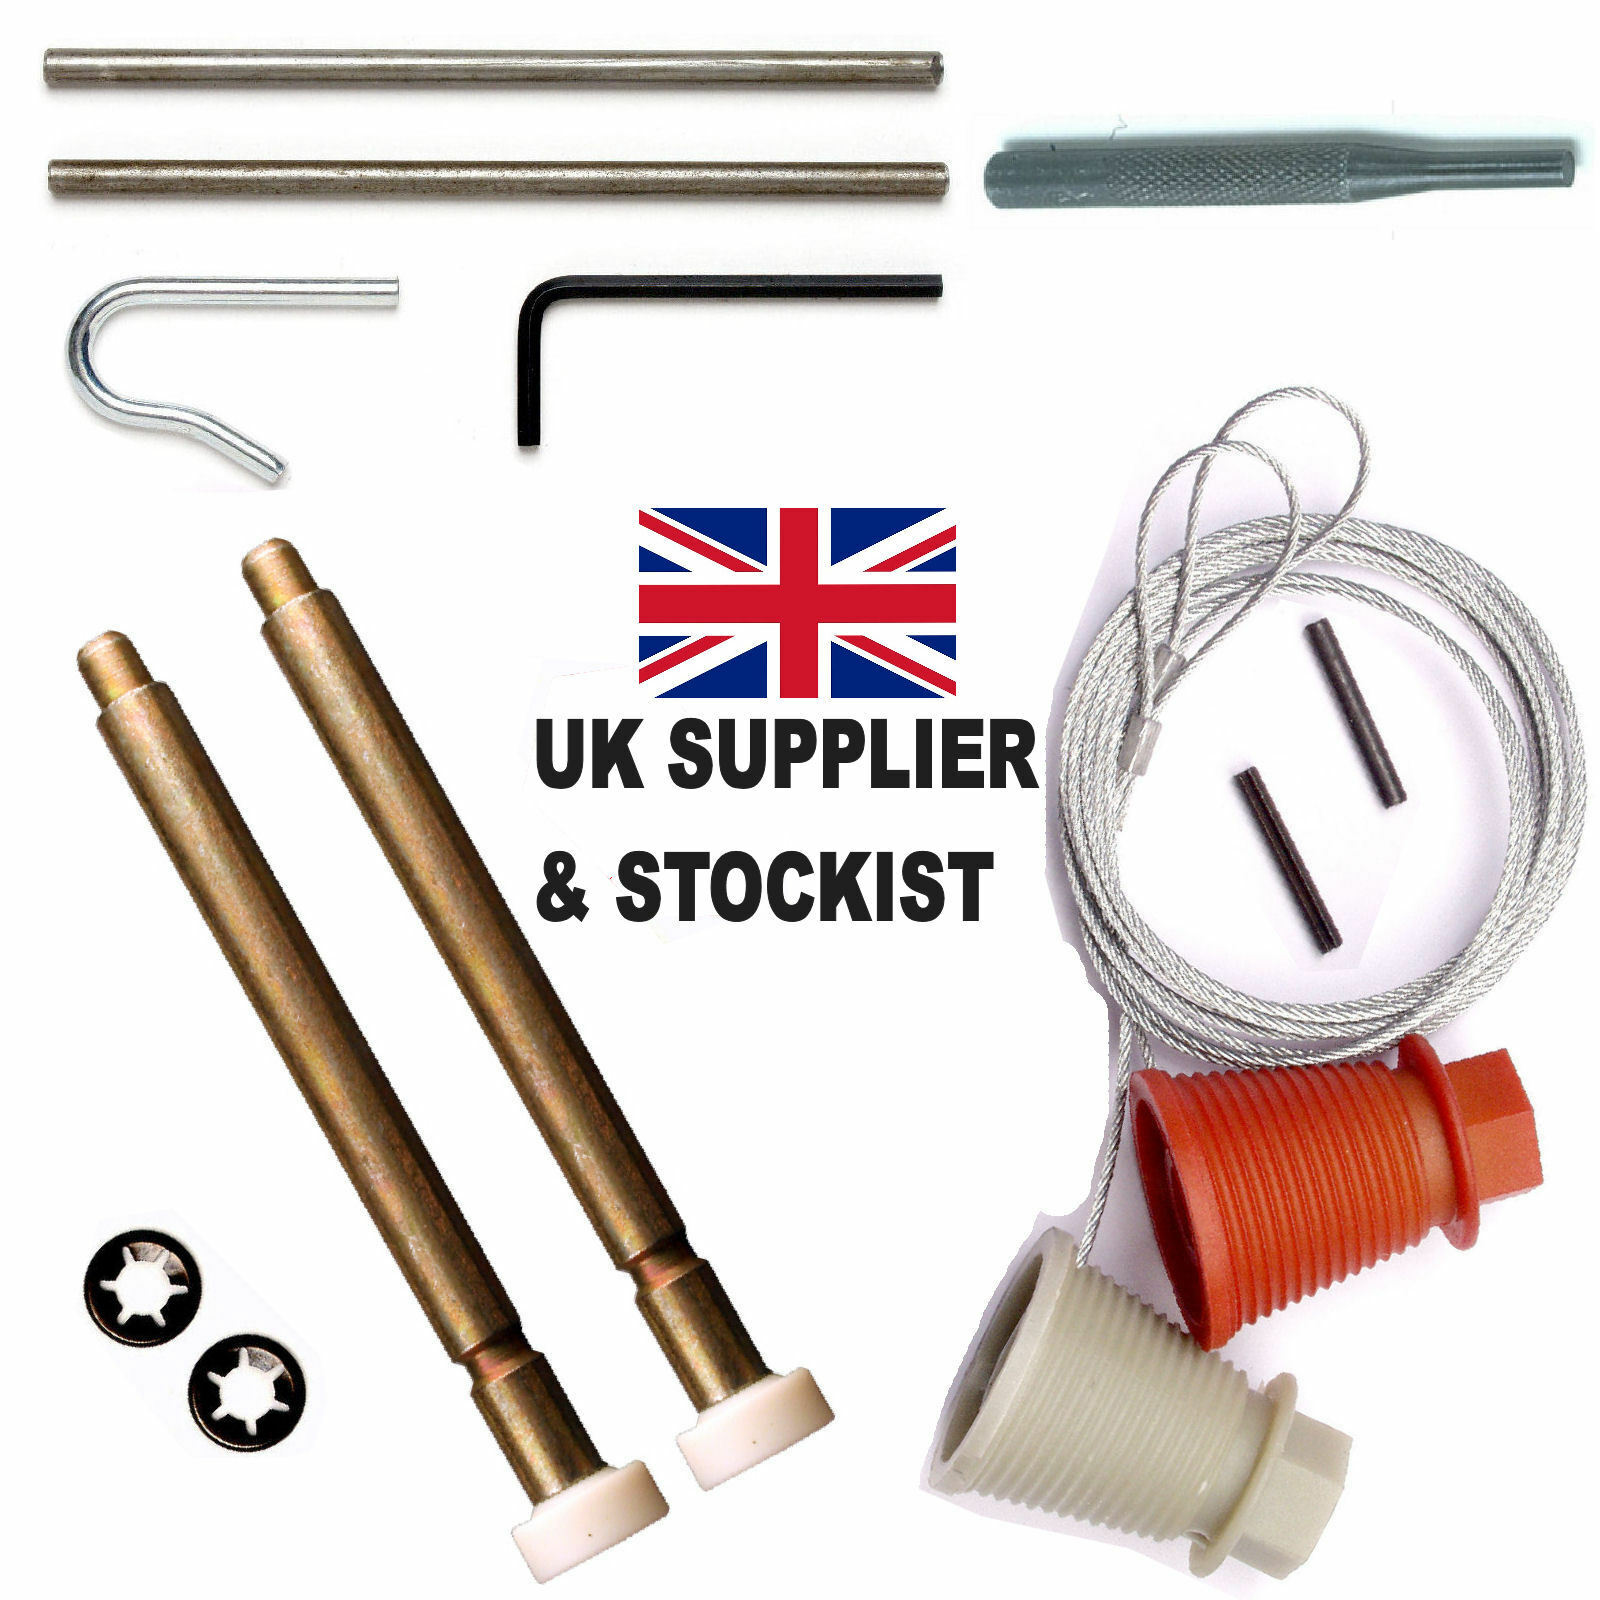 CD45 CARDALE WICKES Spares Cones & Cables Roller Spindles Repair Kit ...